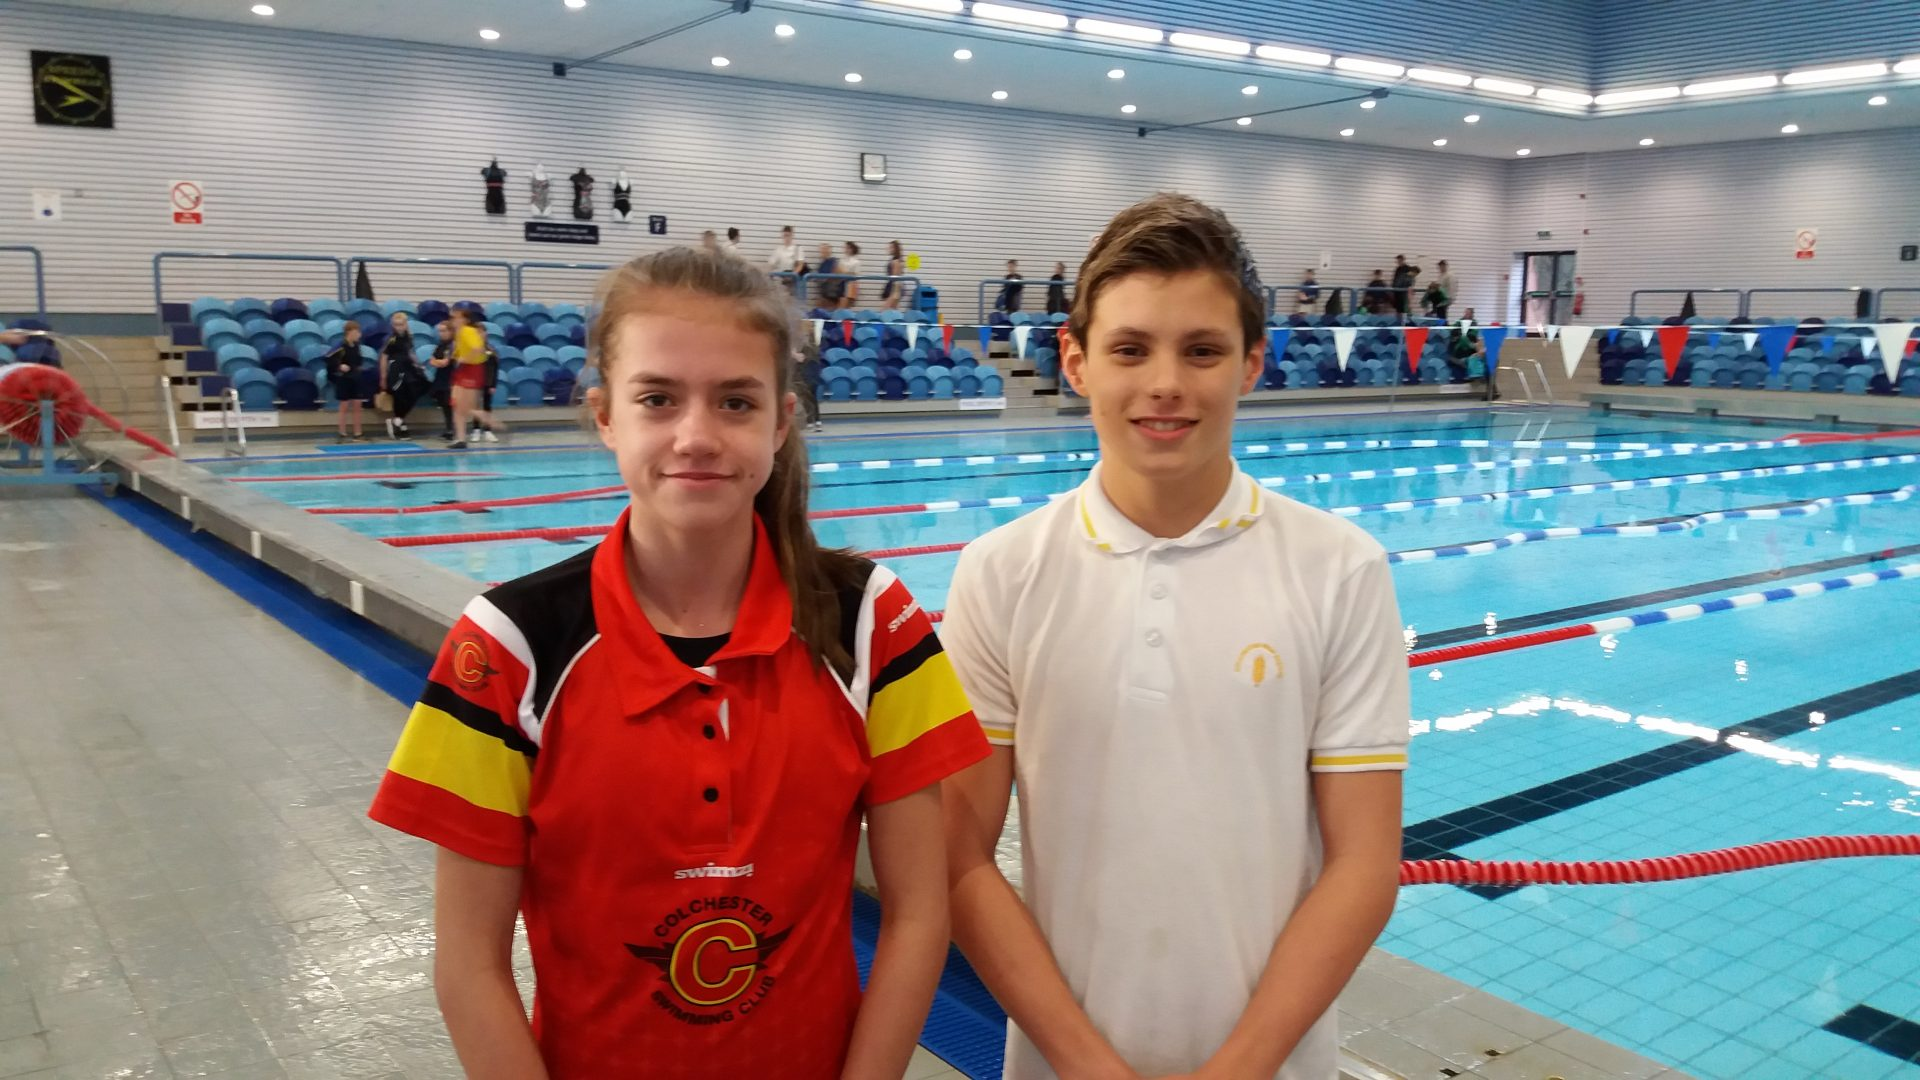 Colchester High School Proudly Hosts the Independent Schools Association (ISA) East Anglia Swimming Gala